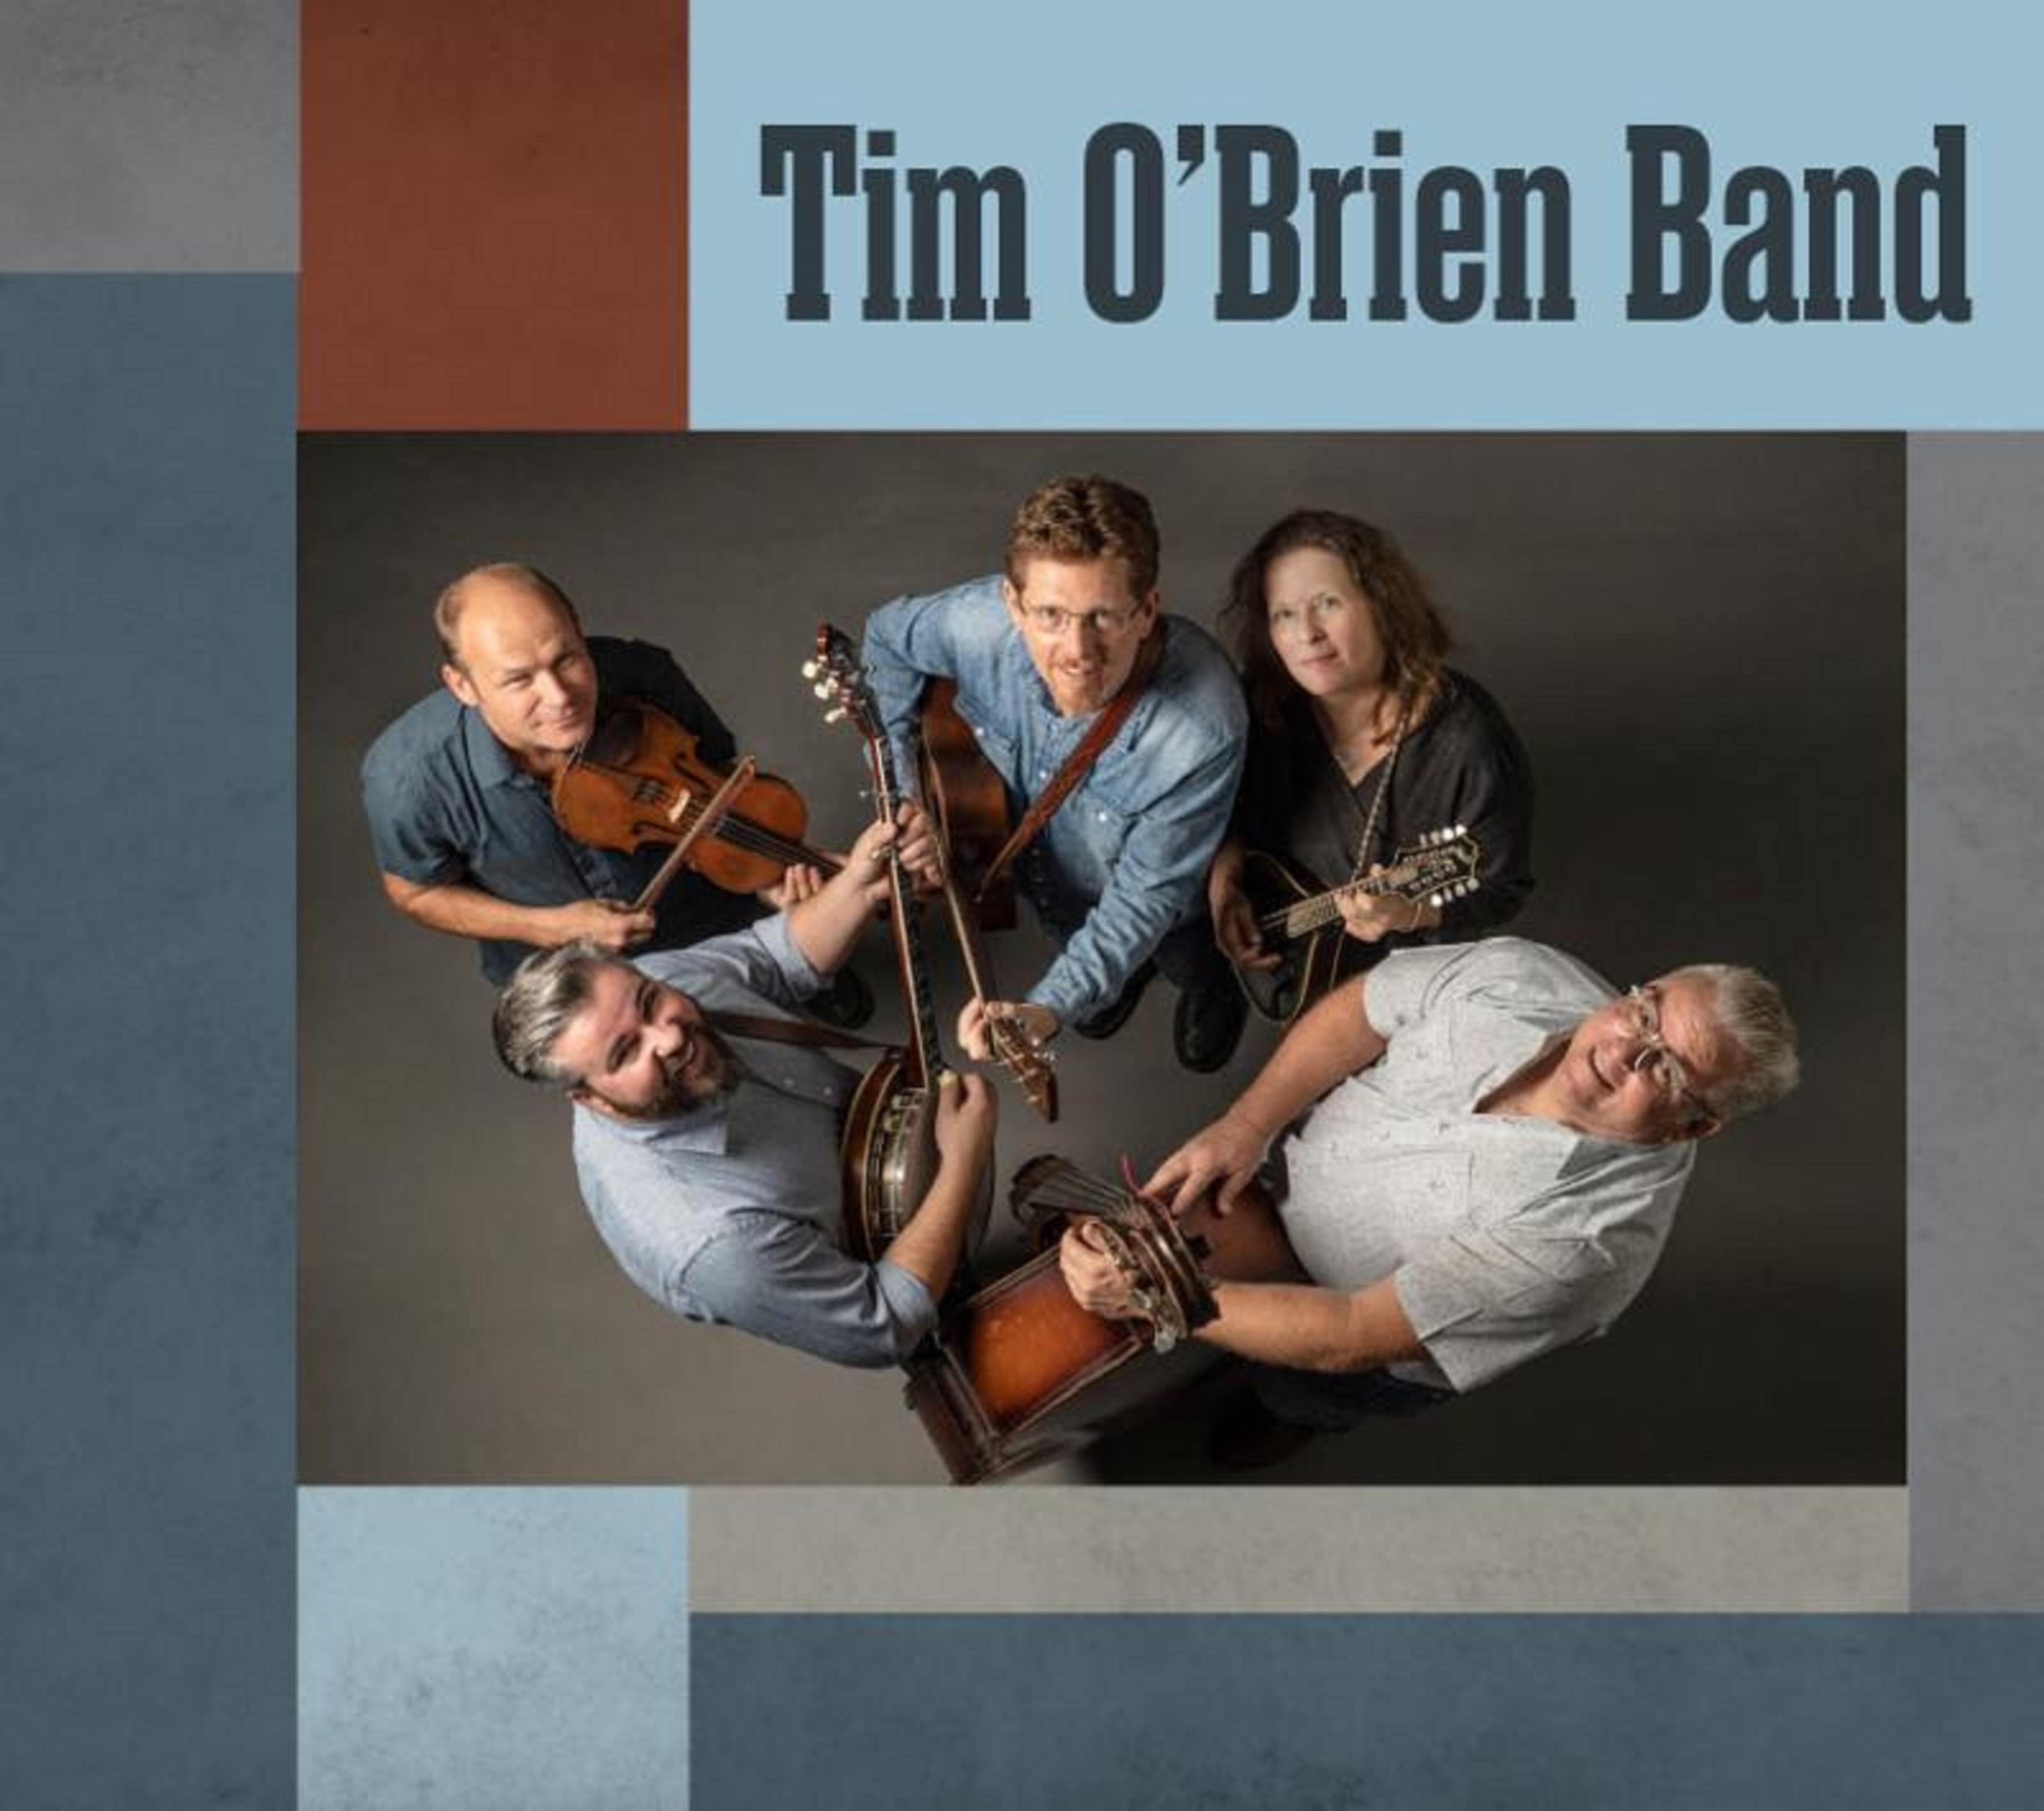 Tim O'Brien readies 'Tim O'Brien Band' for March 15 release